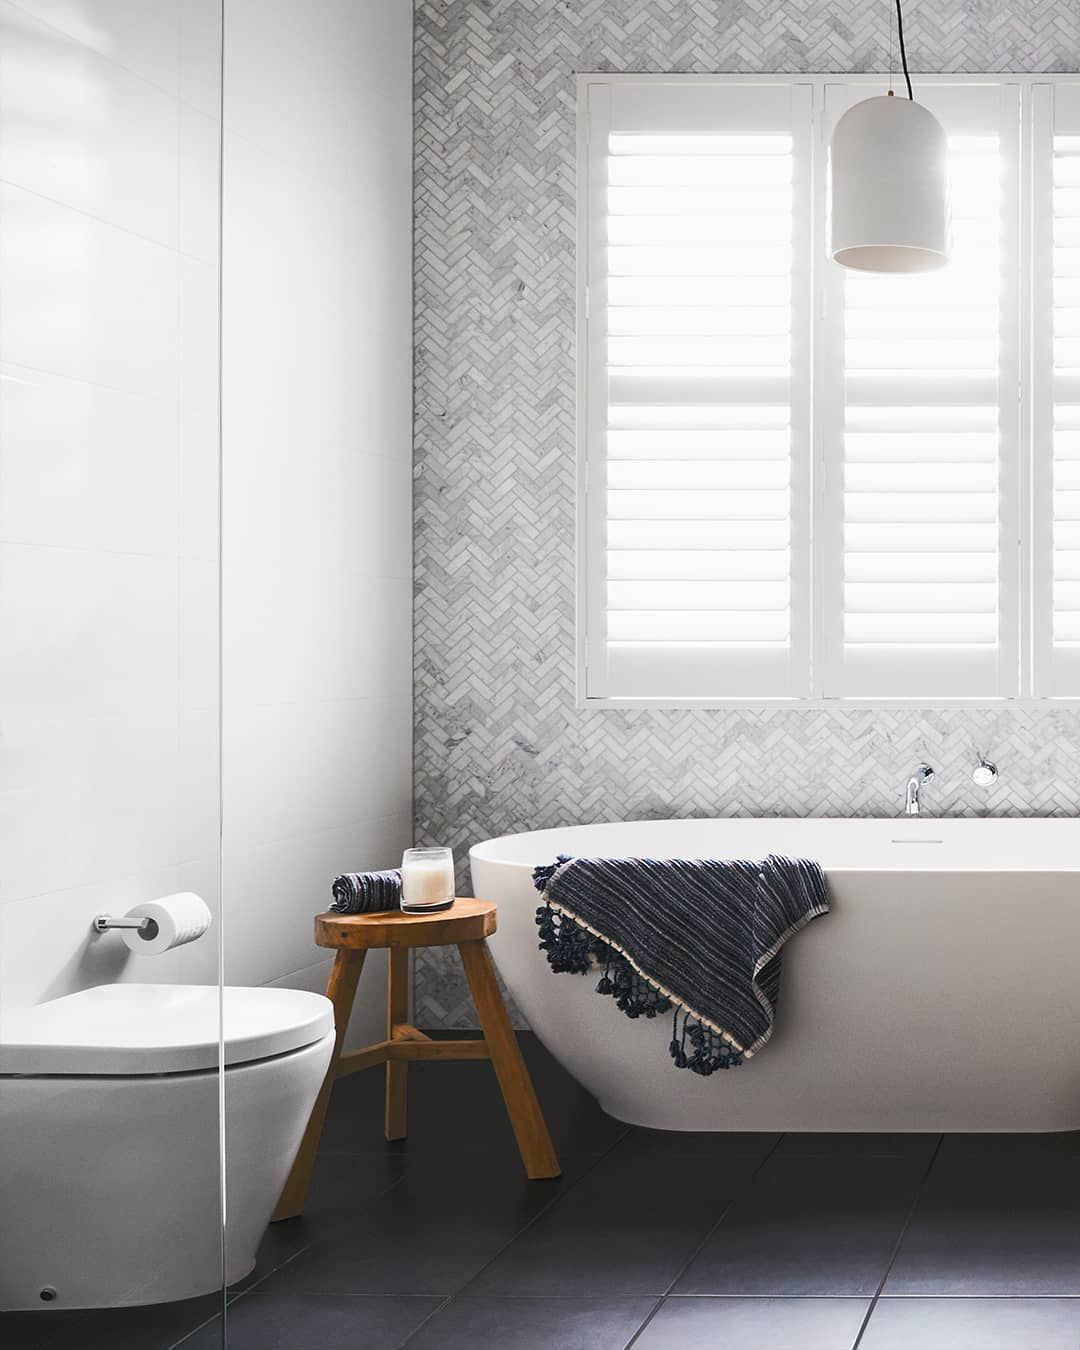 Reece Bathrooms On Instagram Combining Natural Finishes And An